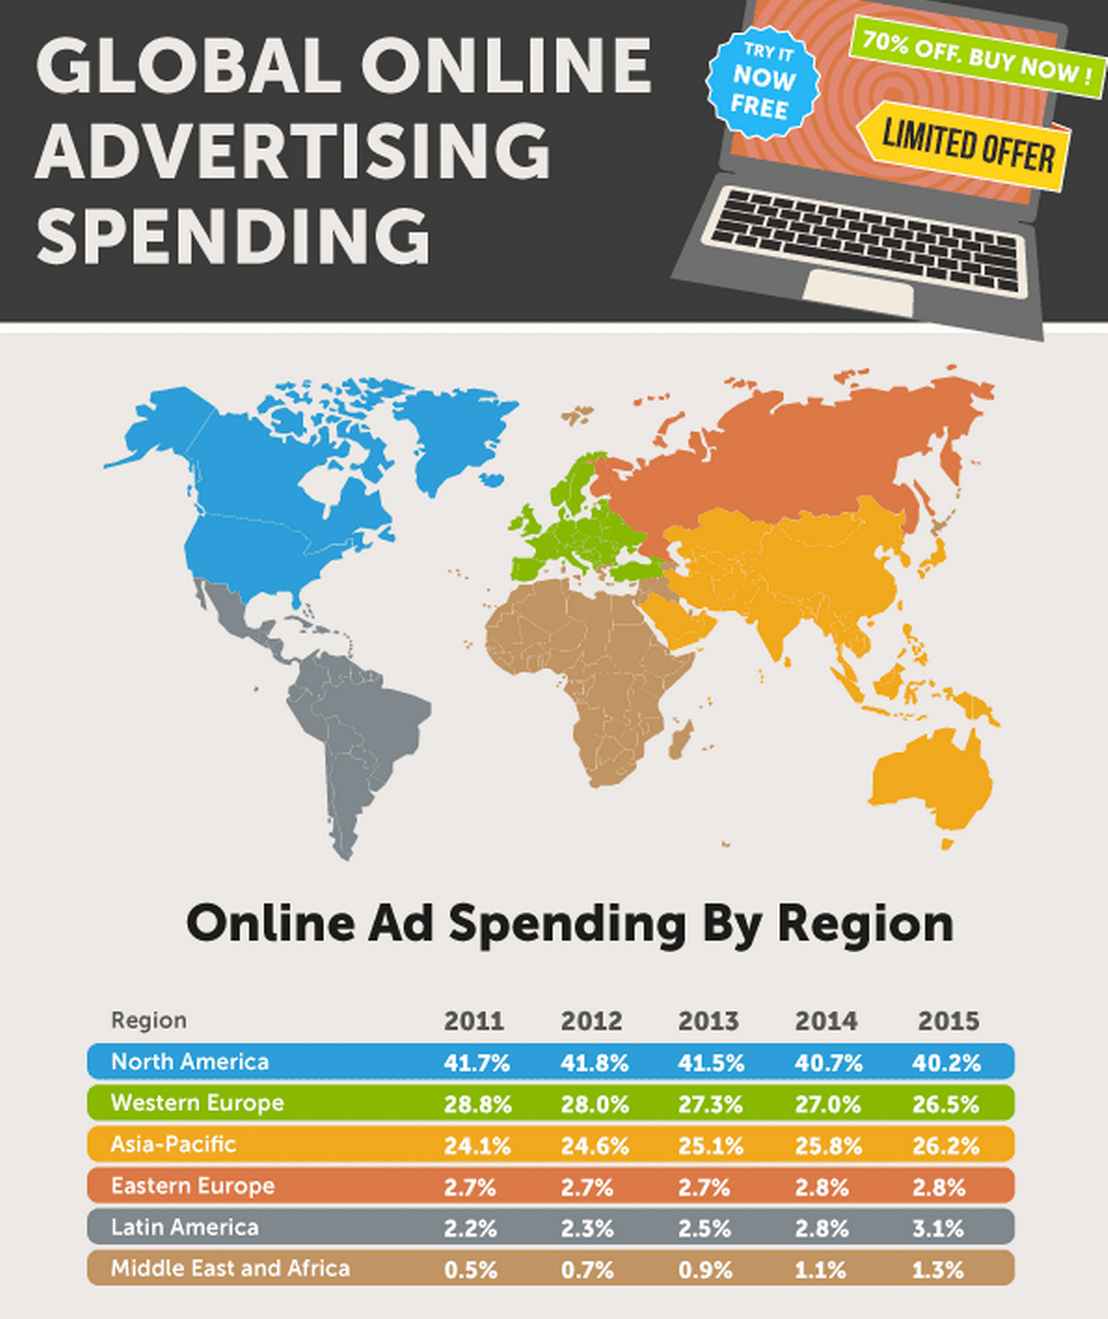 4 H On Twitter Check Out This Infographic On How To: Check Out MENA Online Advertising Scene 2015